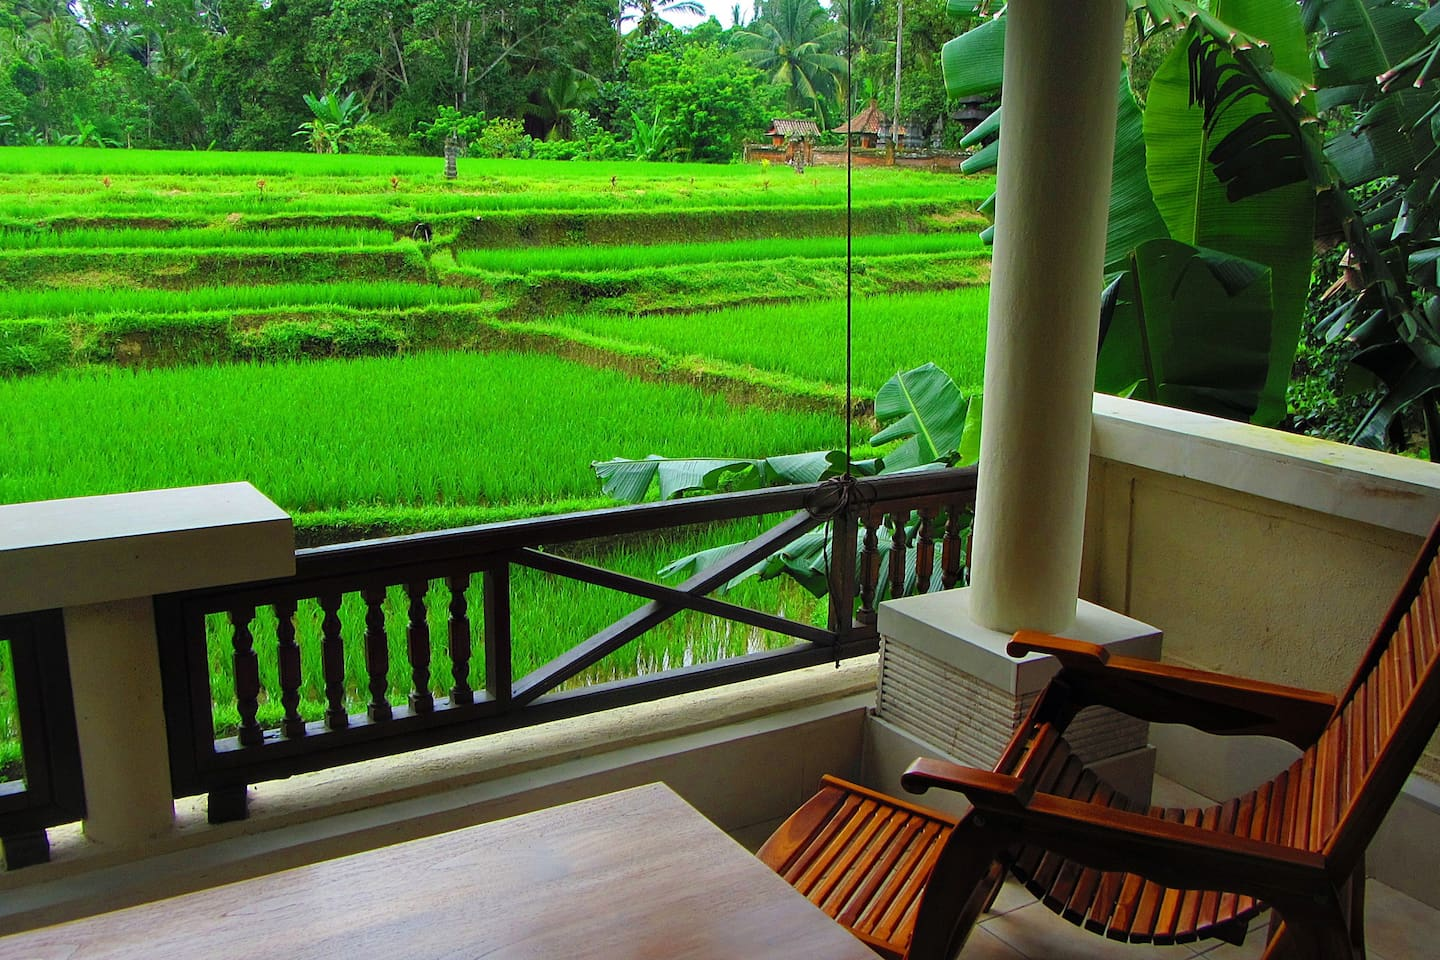 Amazing view of the rice paddy while you relax on the breezy balcony.